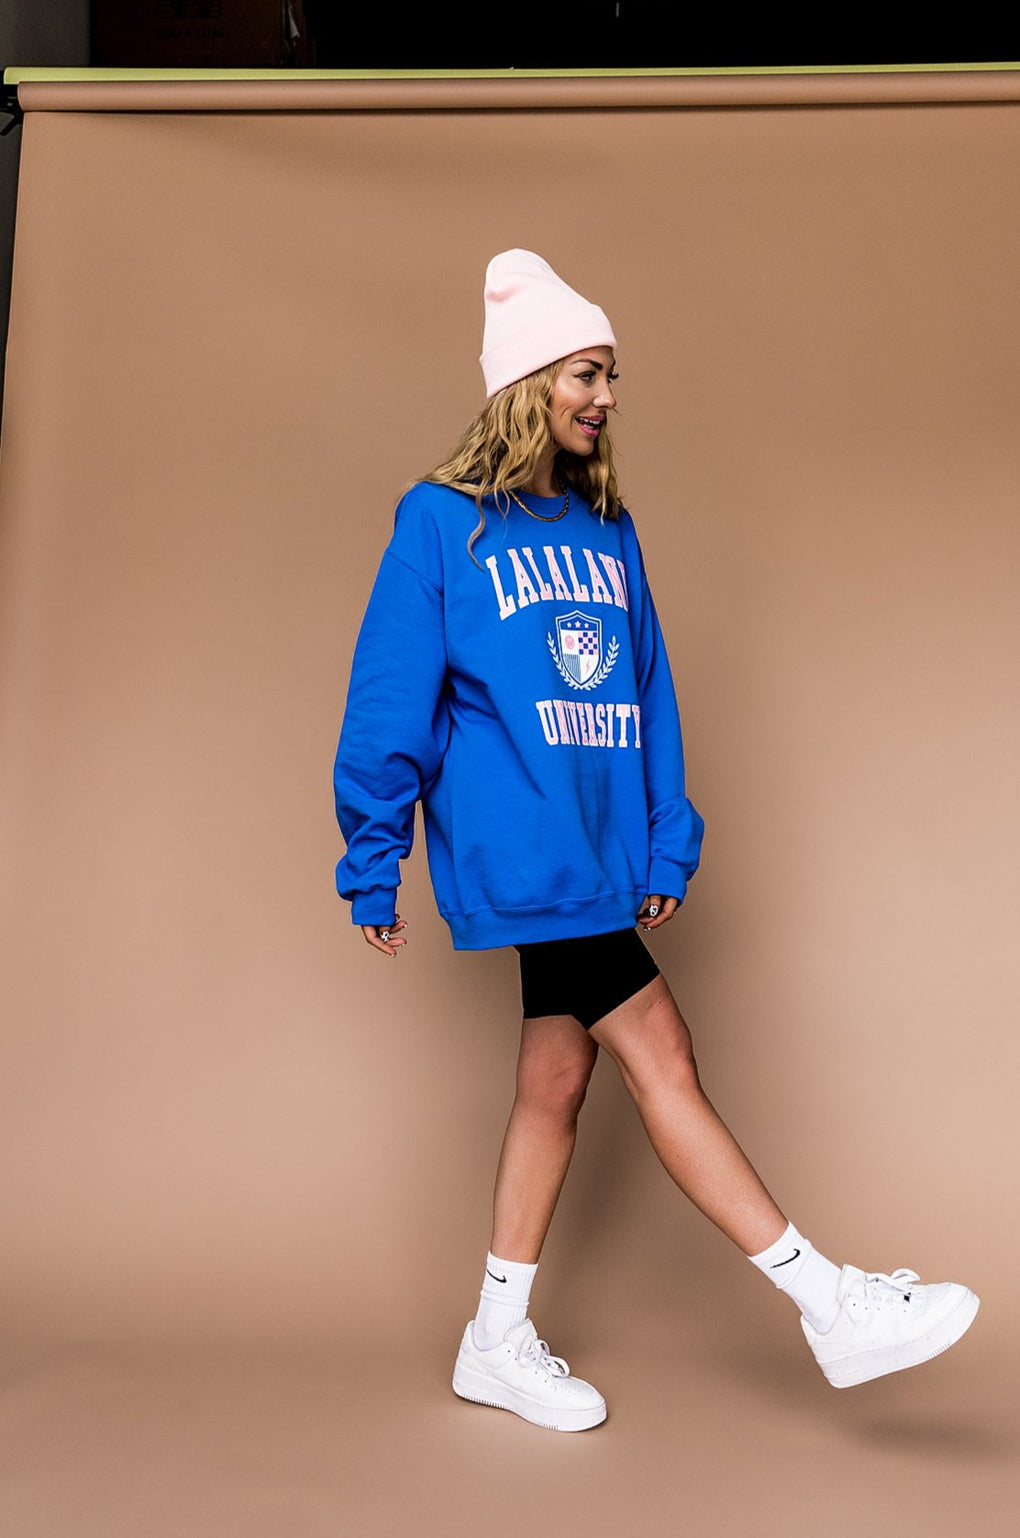 LALA ORIGINAL DESIGN: Lalaland University Pullover